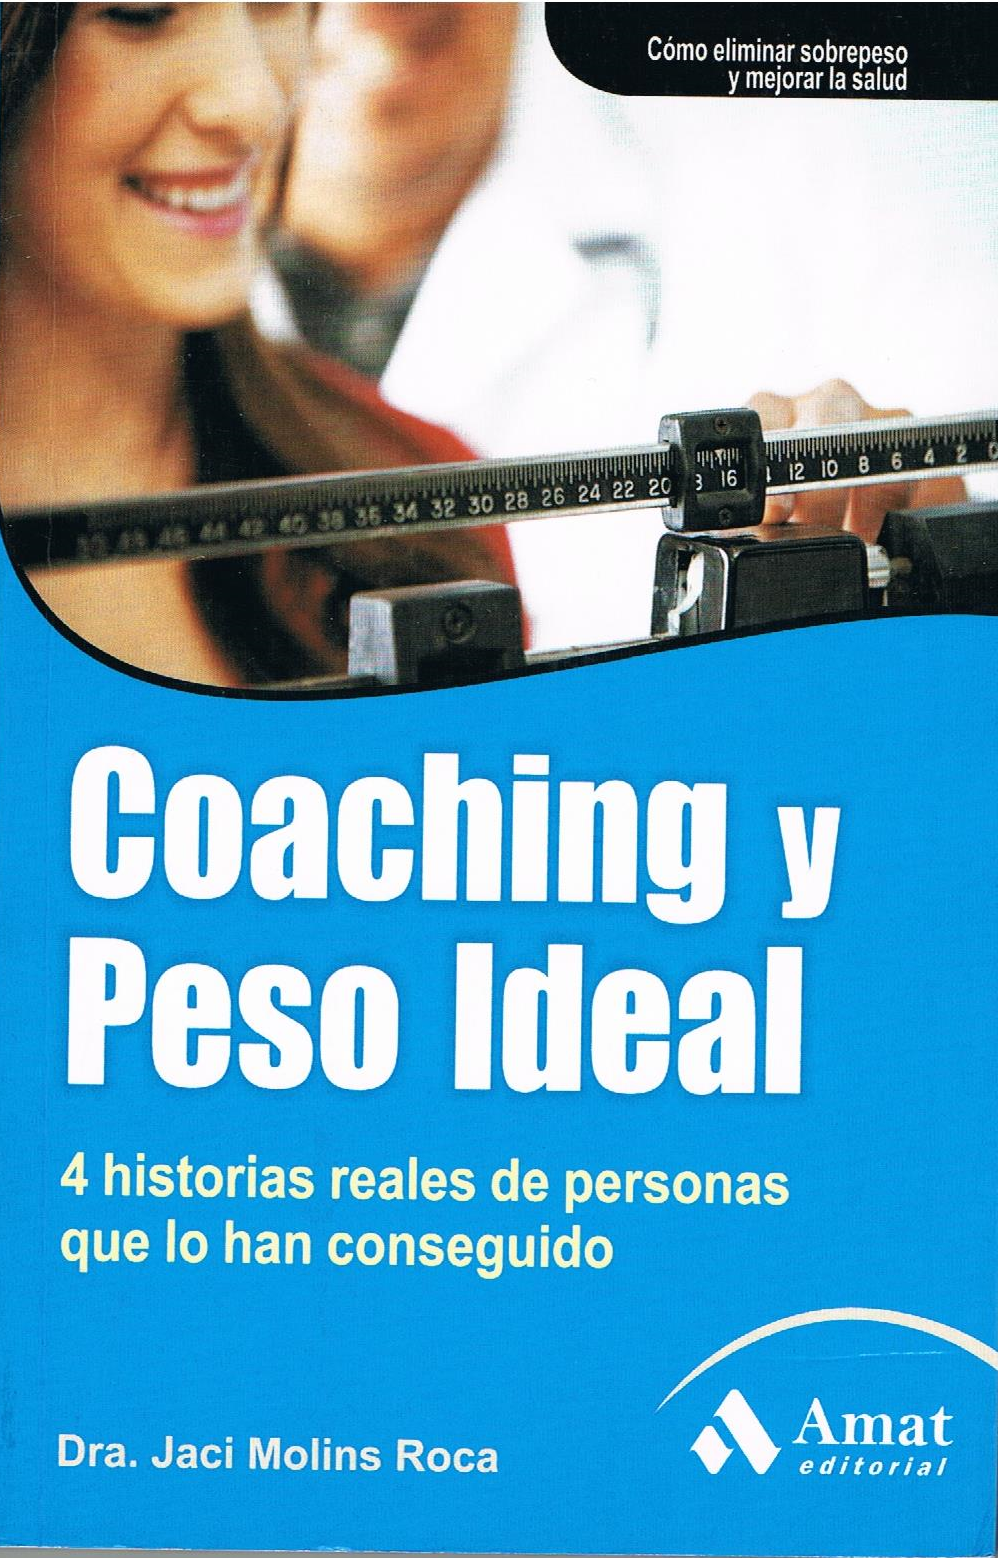 Reseña del libro Coaching y Peso Ideal